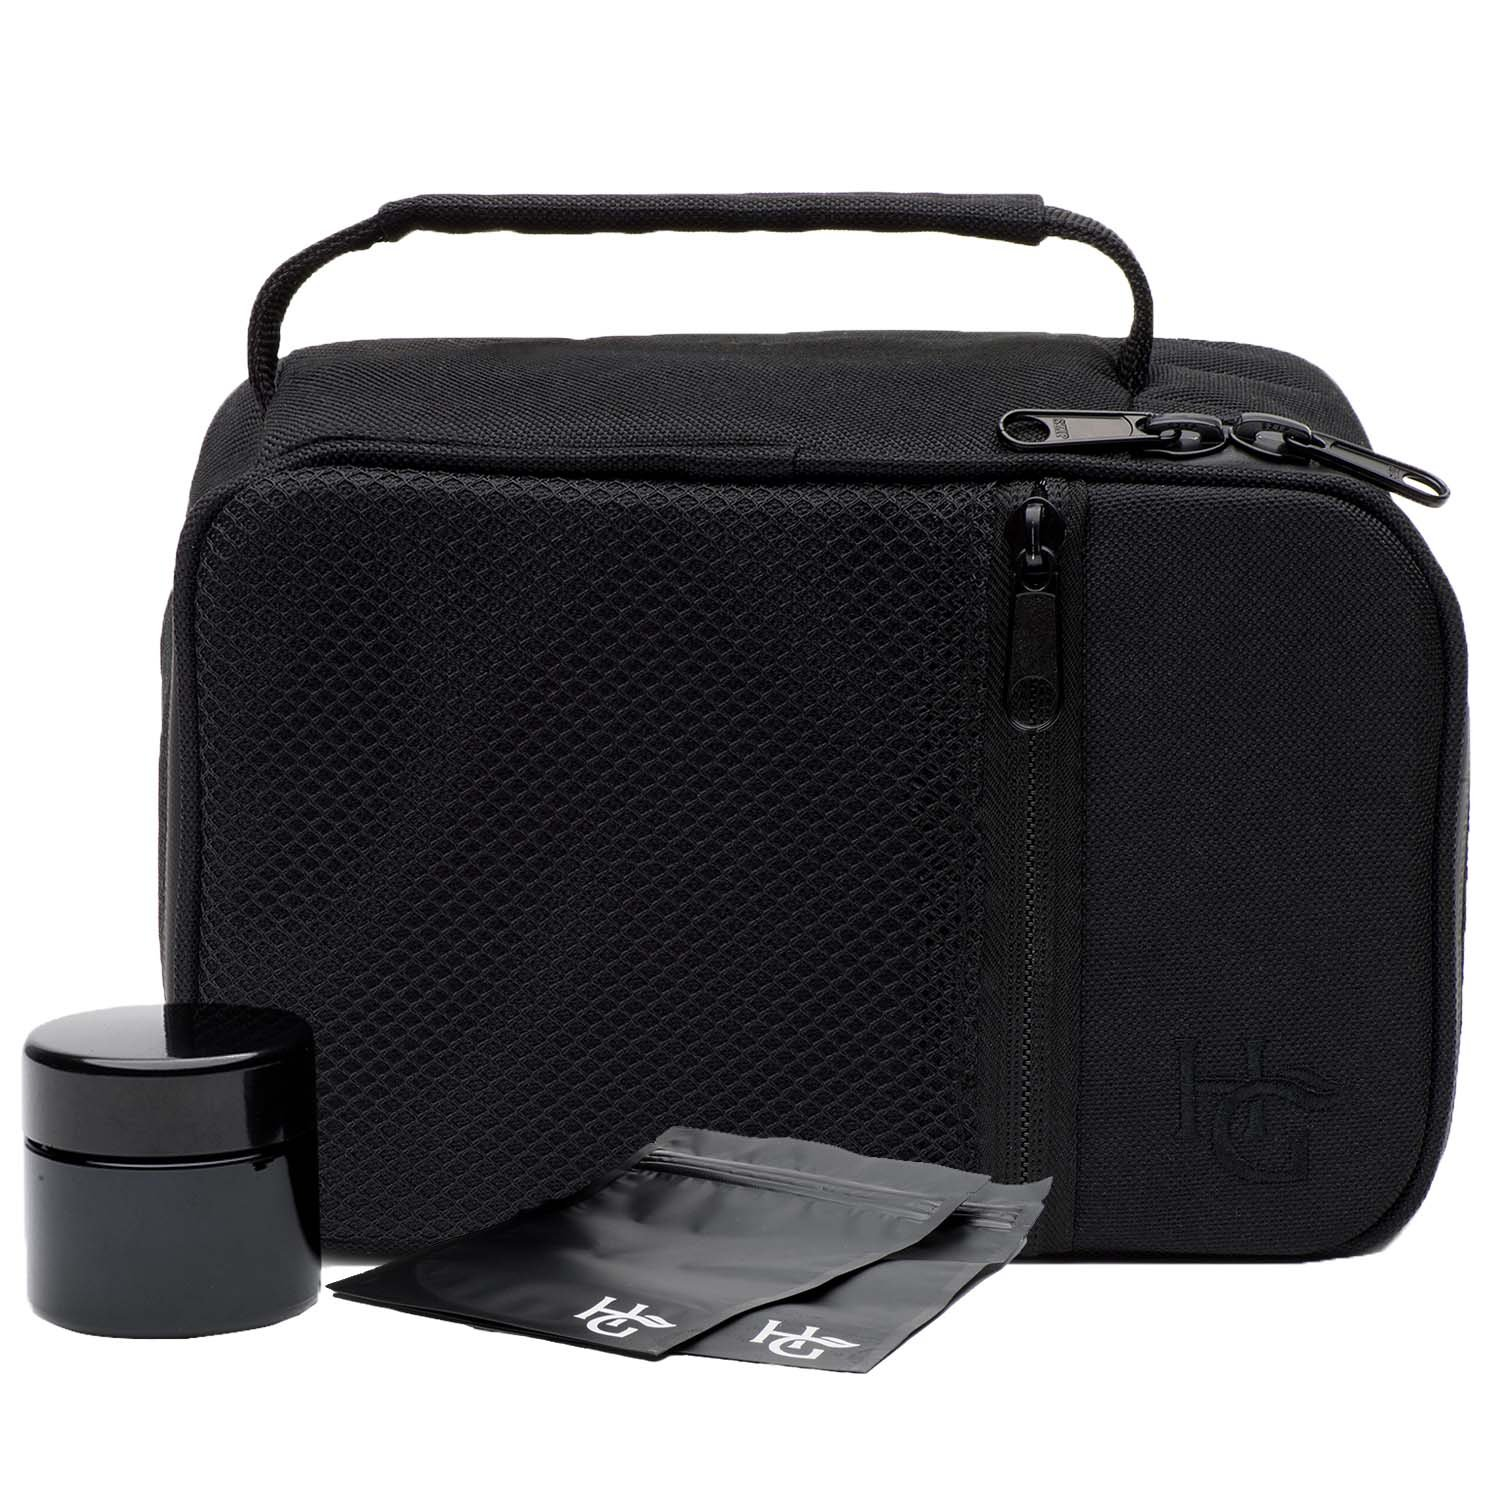 Large Smell Proof Case by Herb Guard with Combination Lock (No Smell Container Holds 3 Ounces) - No Smell Bag Comes with Smell Proof Jar and Resealable Travel Bags